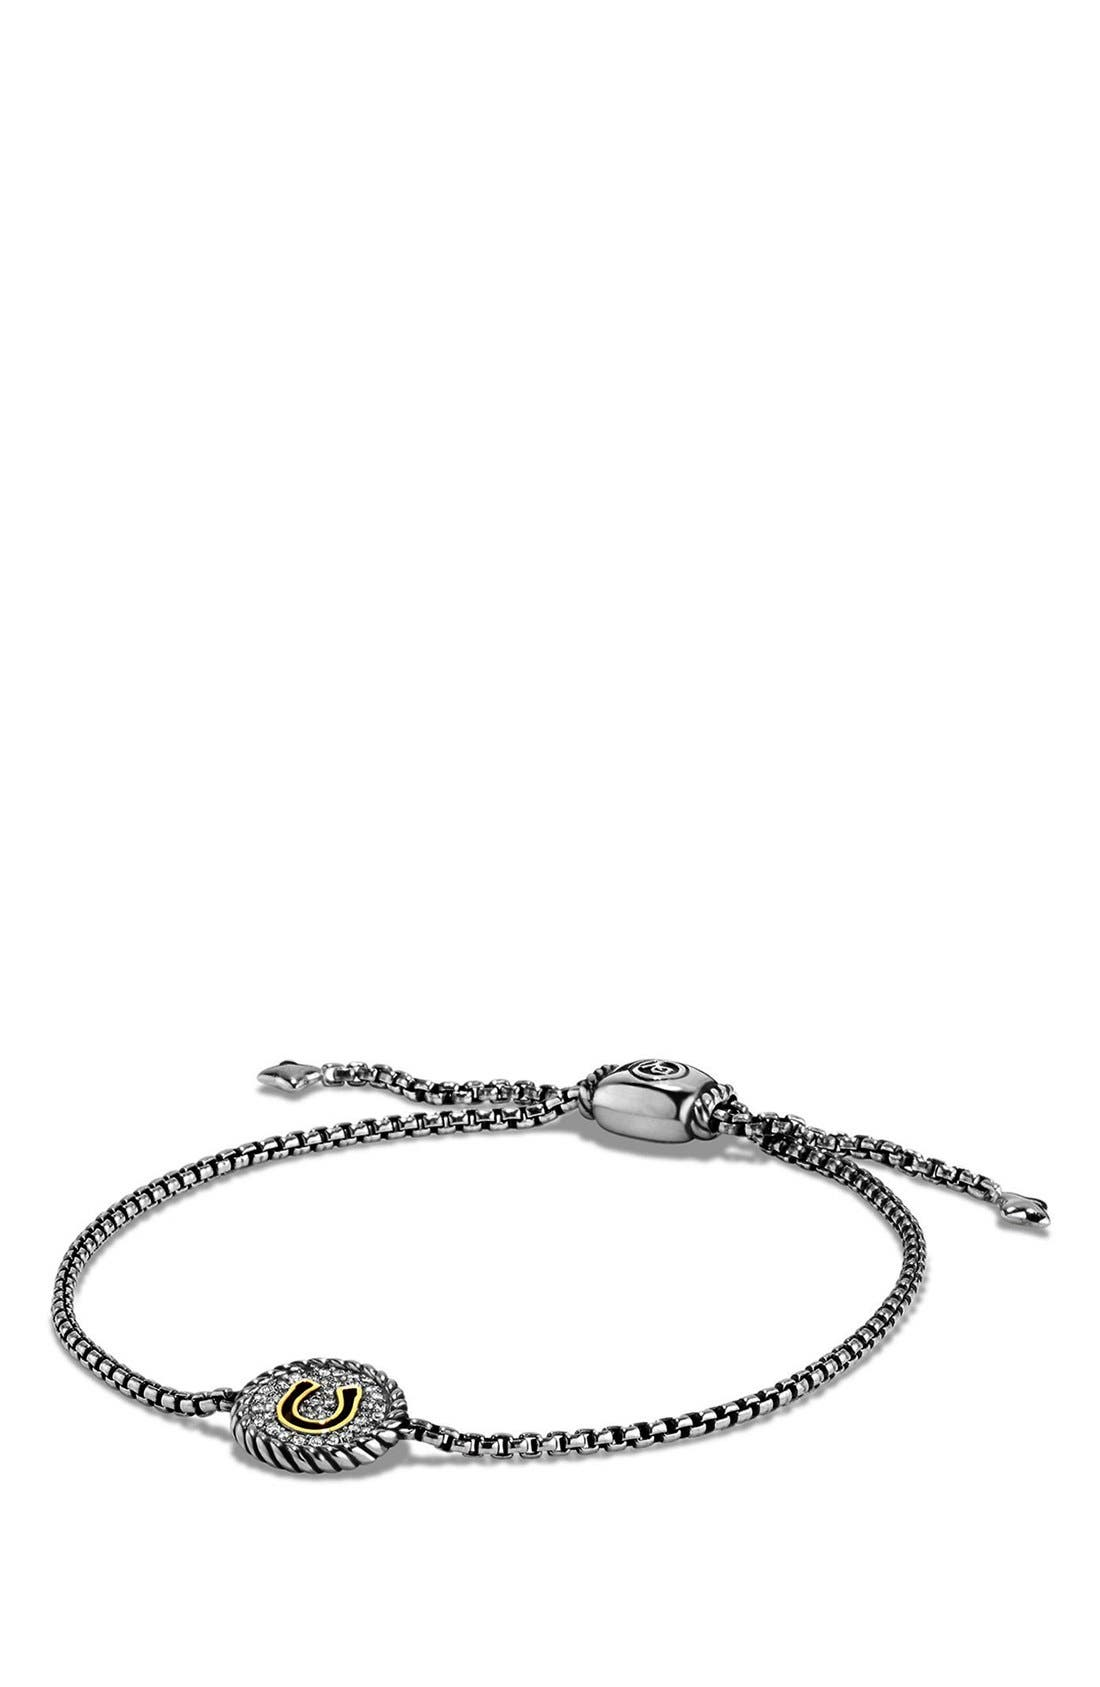 Main Image - David Yurman 'Cable Collectibles' Horseshoe Station Bracelet with Diamonds